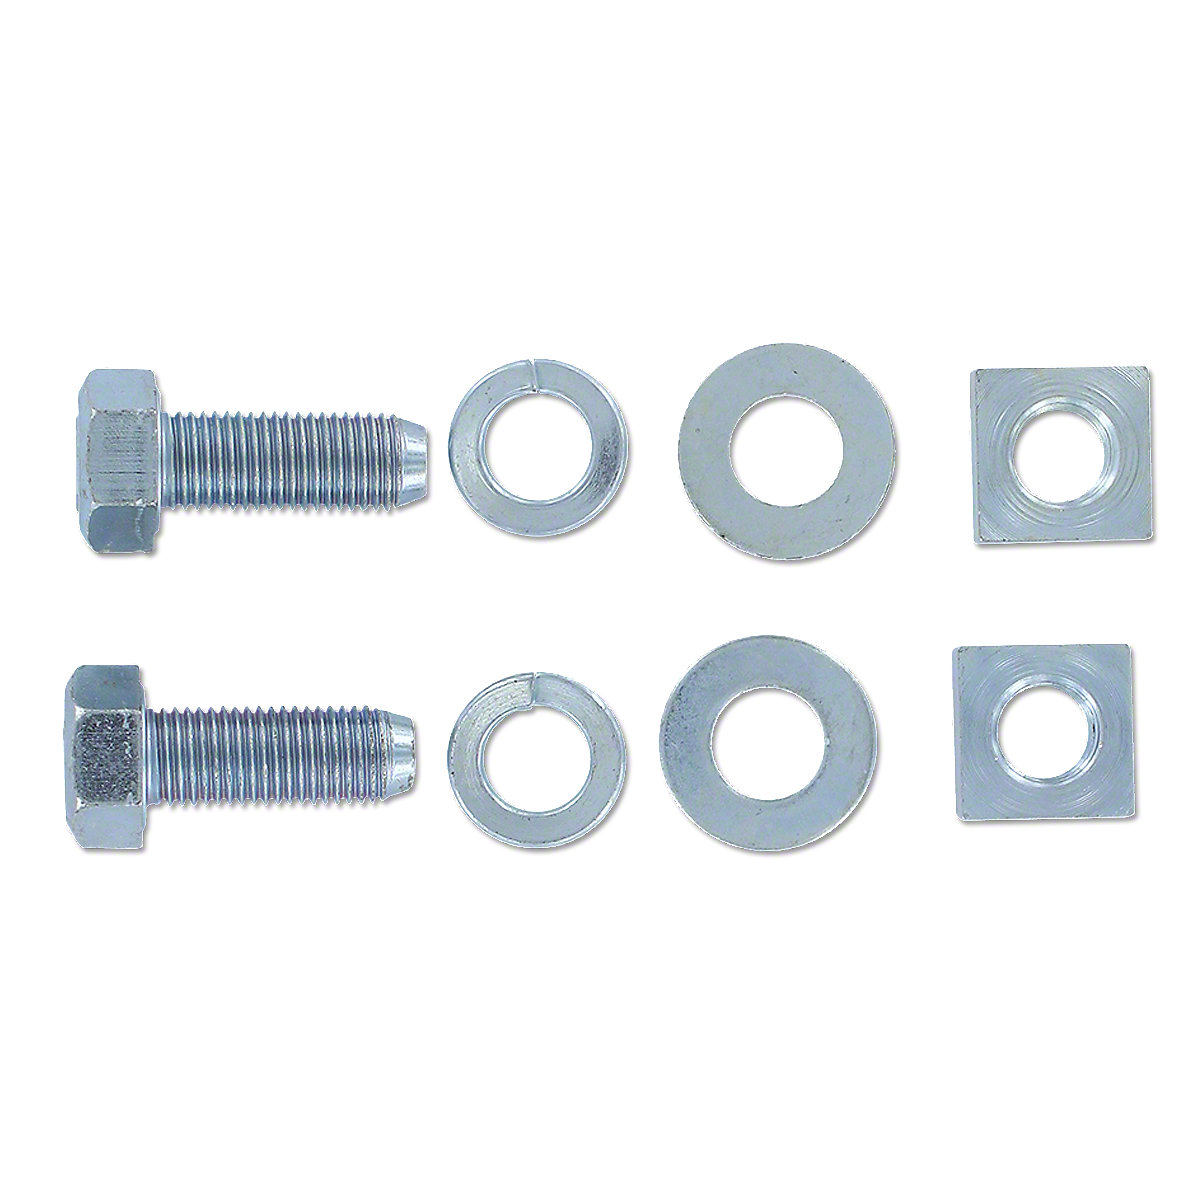 Hood Side Panel To Axle Support Bolt For Massey Ferguson: TE20, TEA20, TO20, TO30.